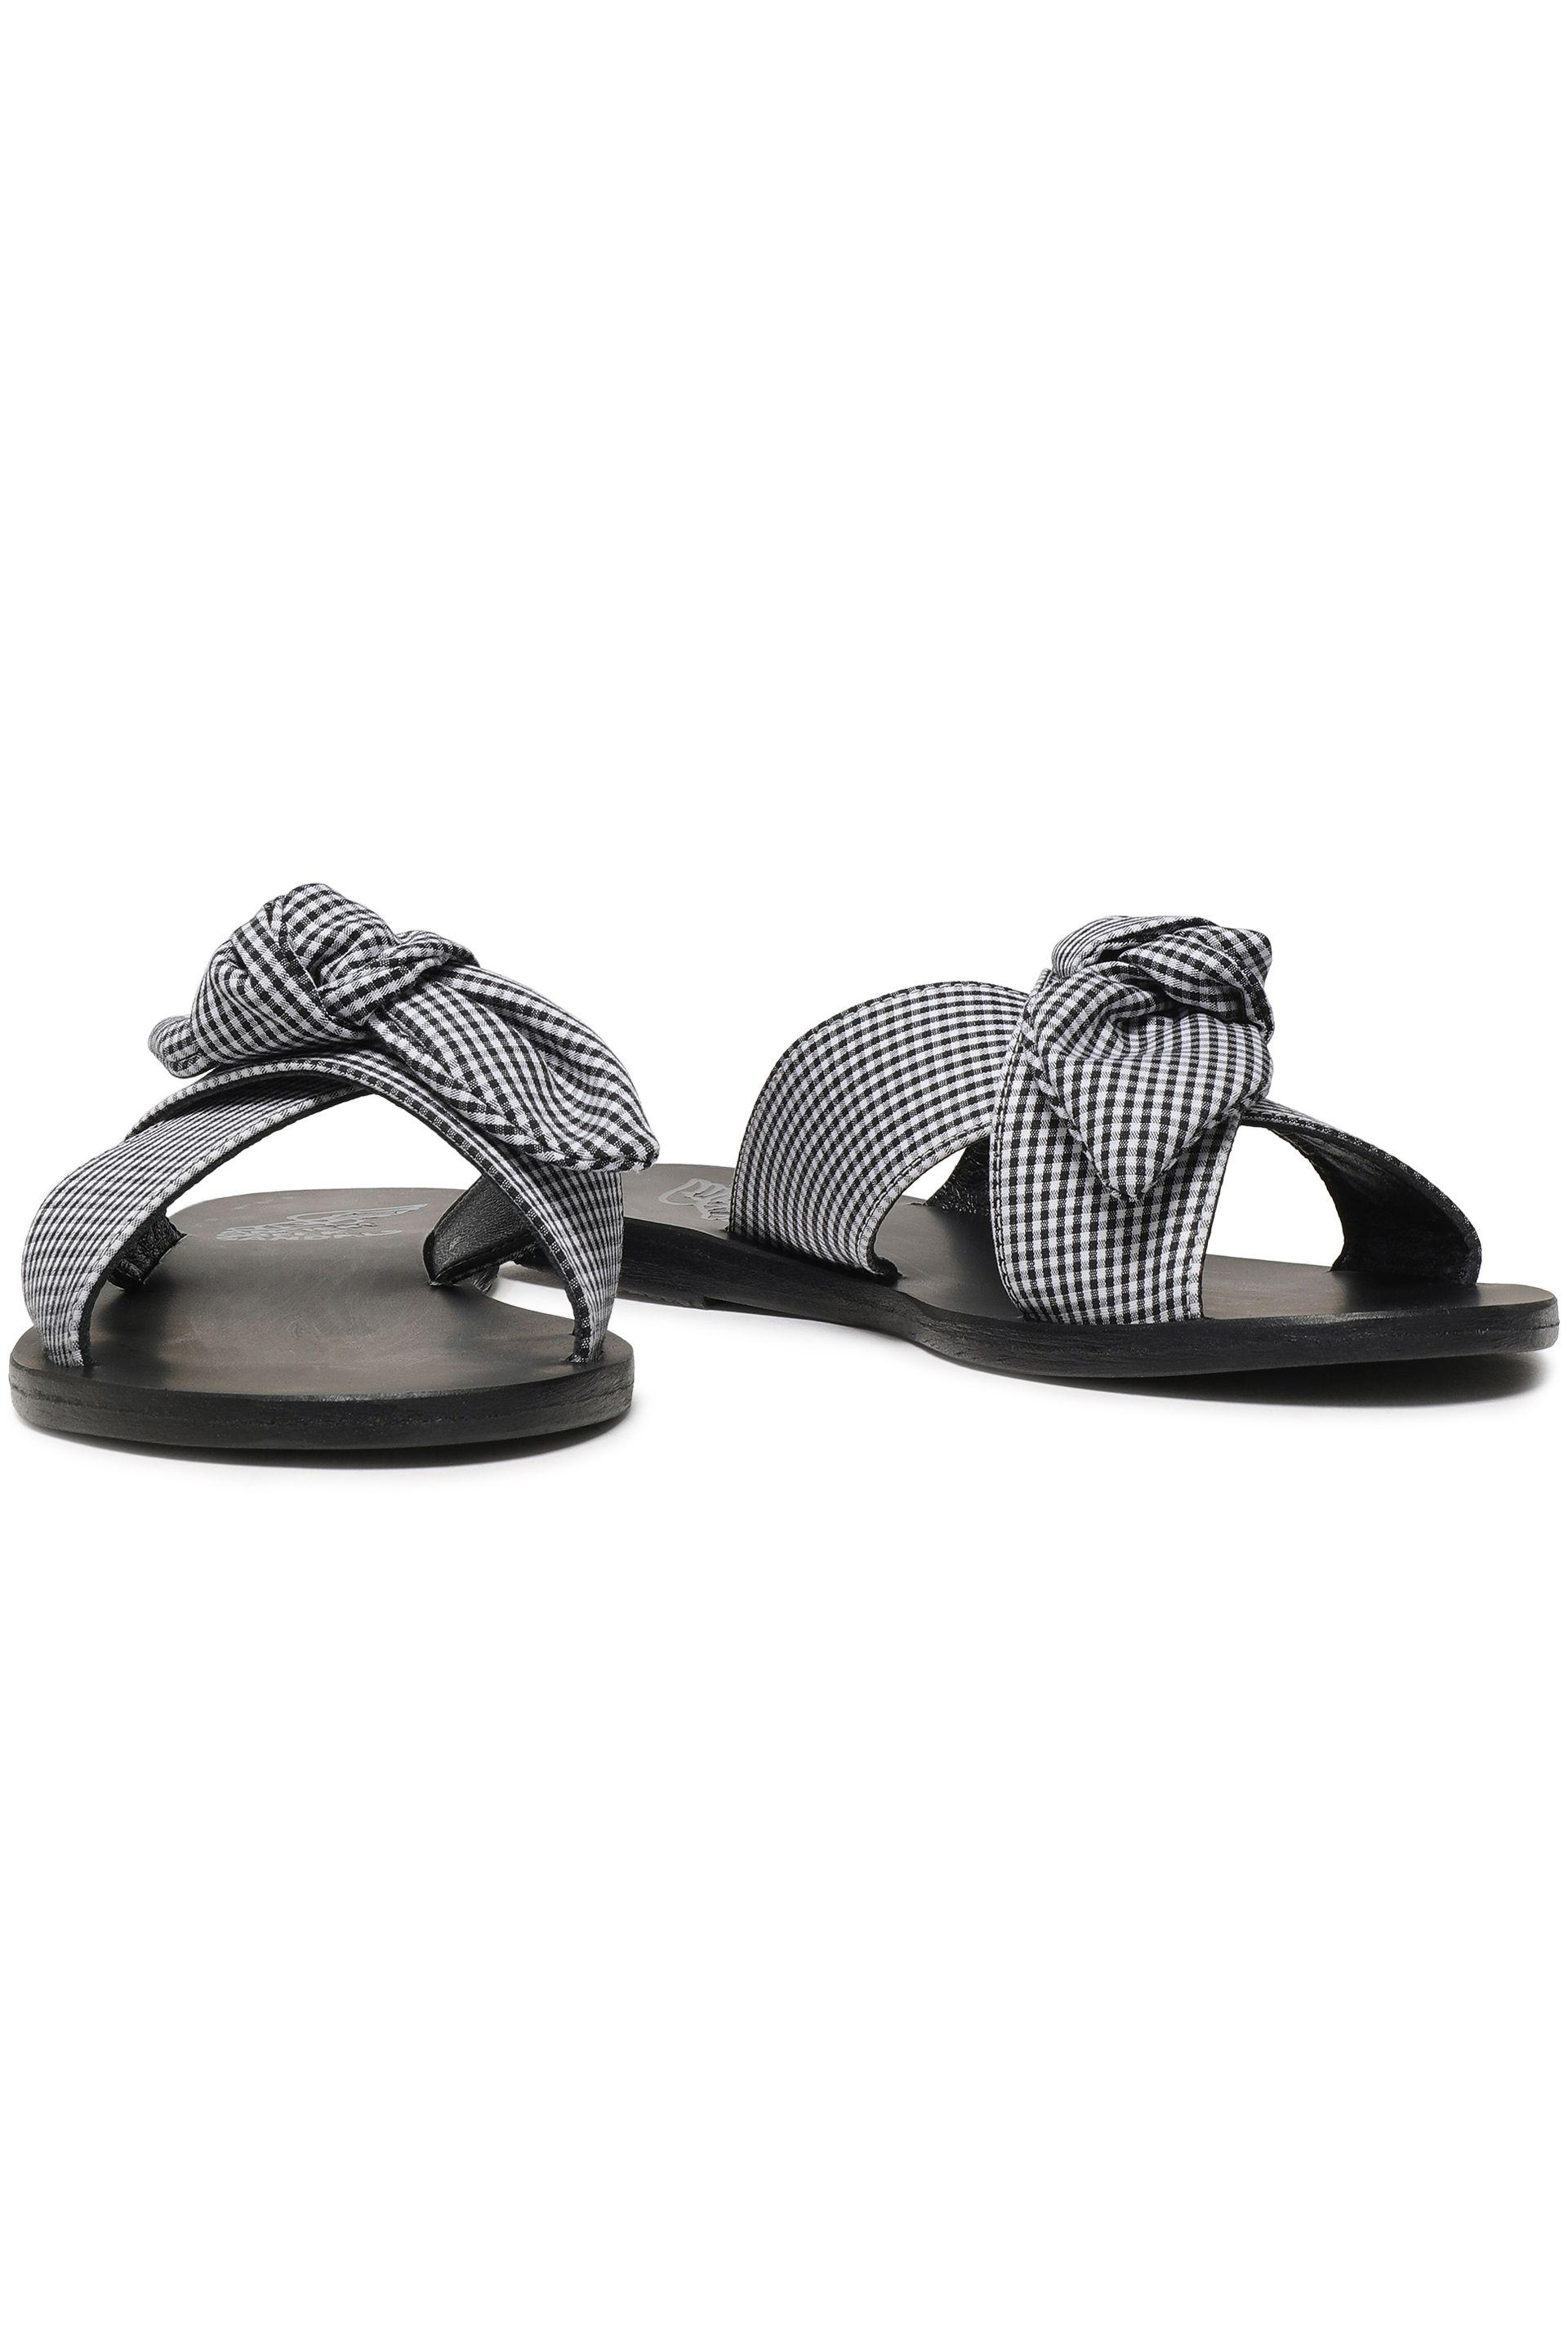 249009c16e931 Ancient Greek Sandals - Woman Thais Bow-embellished Gingham Woven Slides  Black - Lyst. View fullscreen